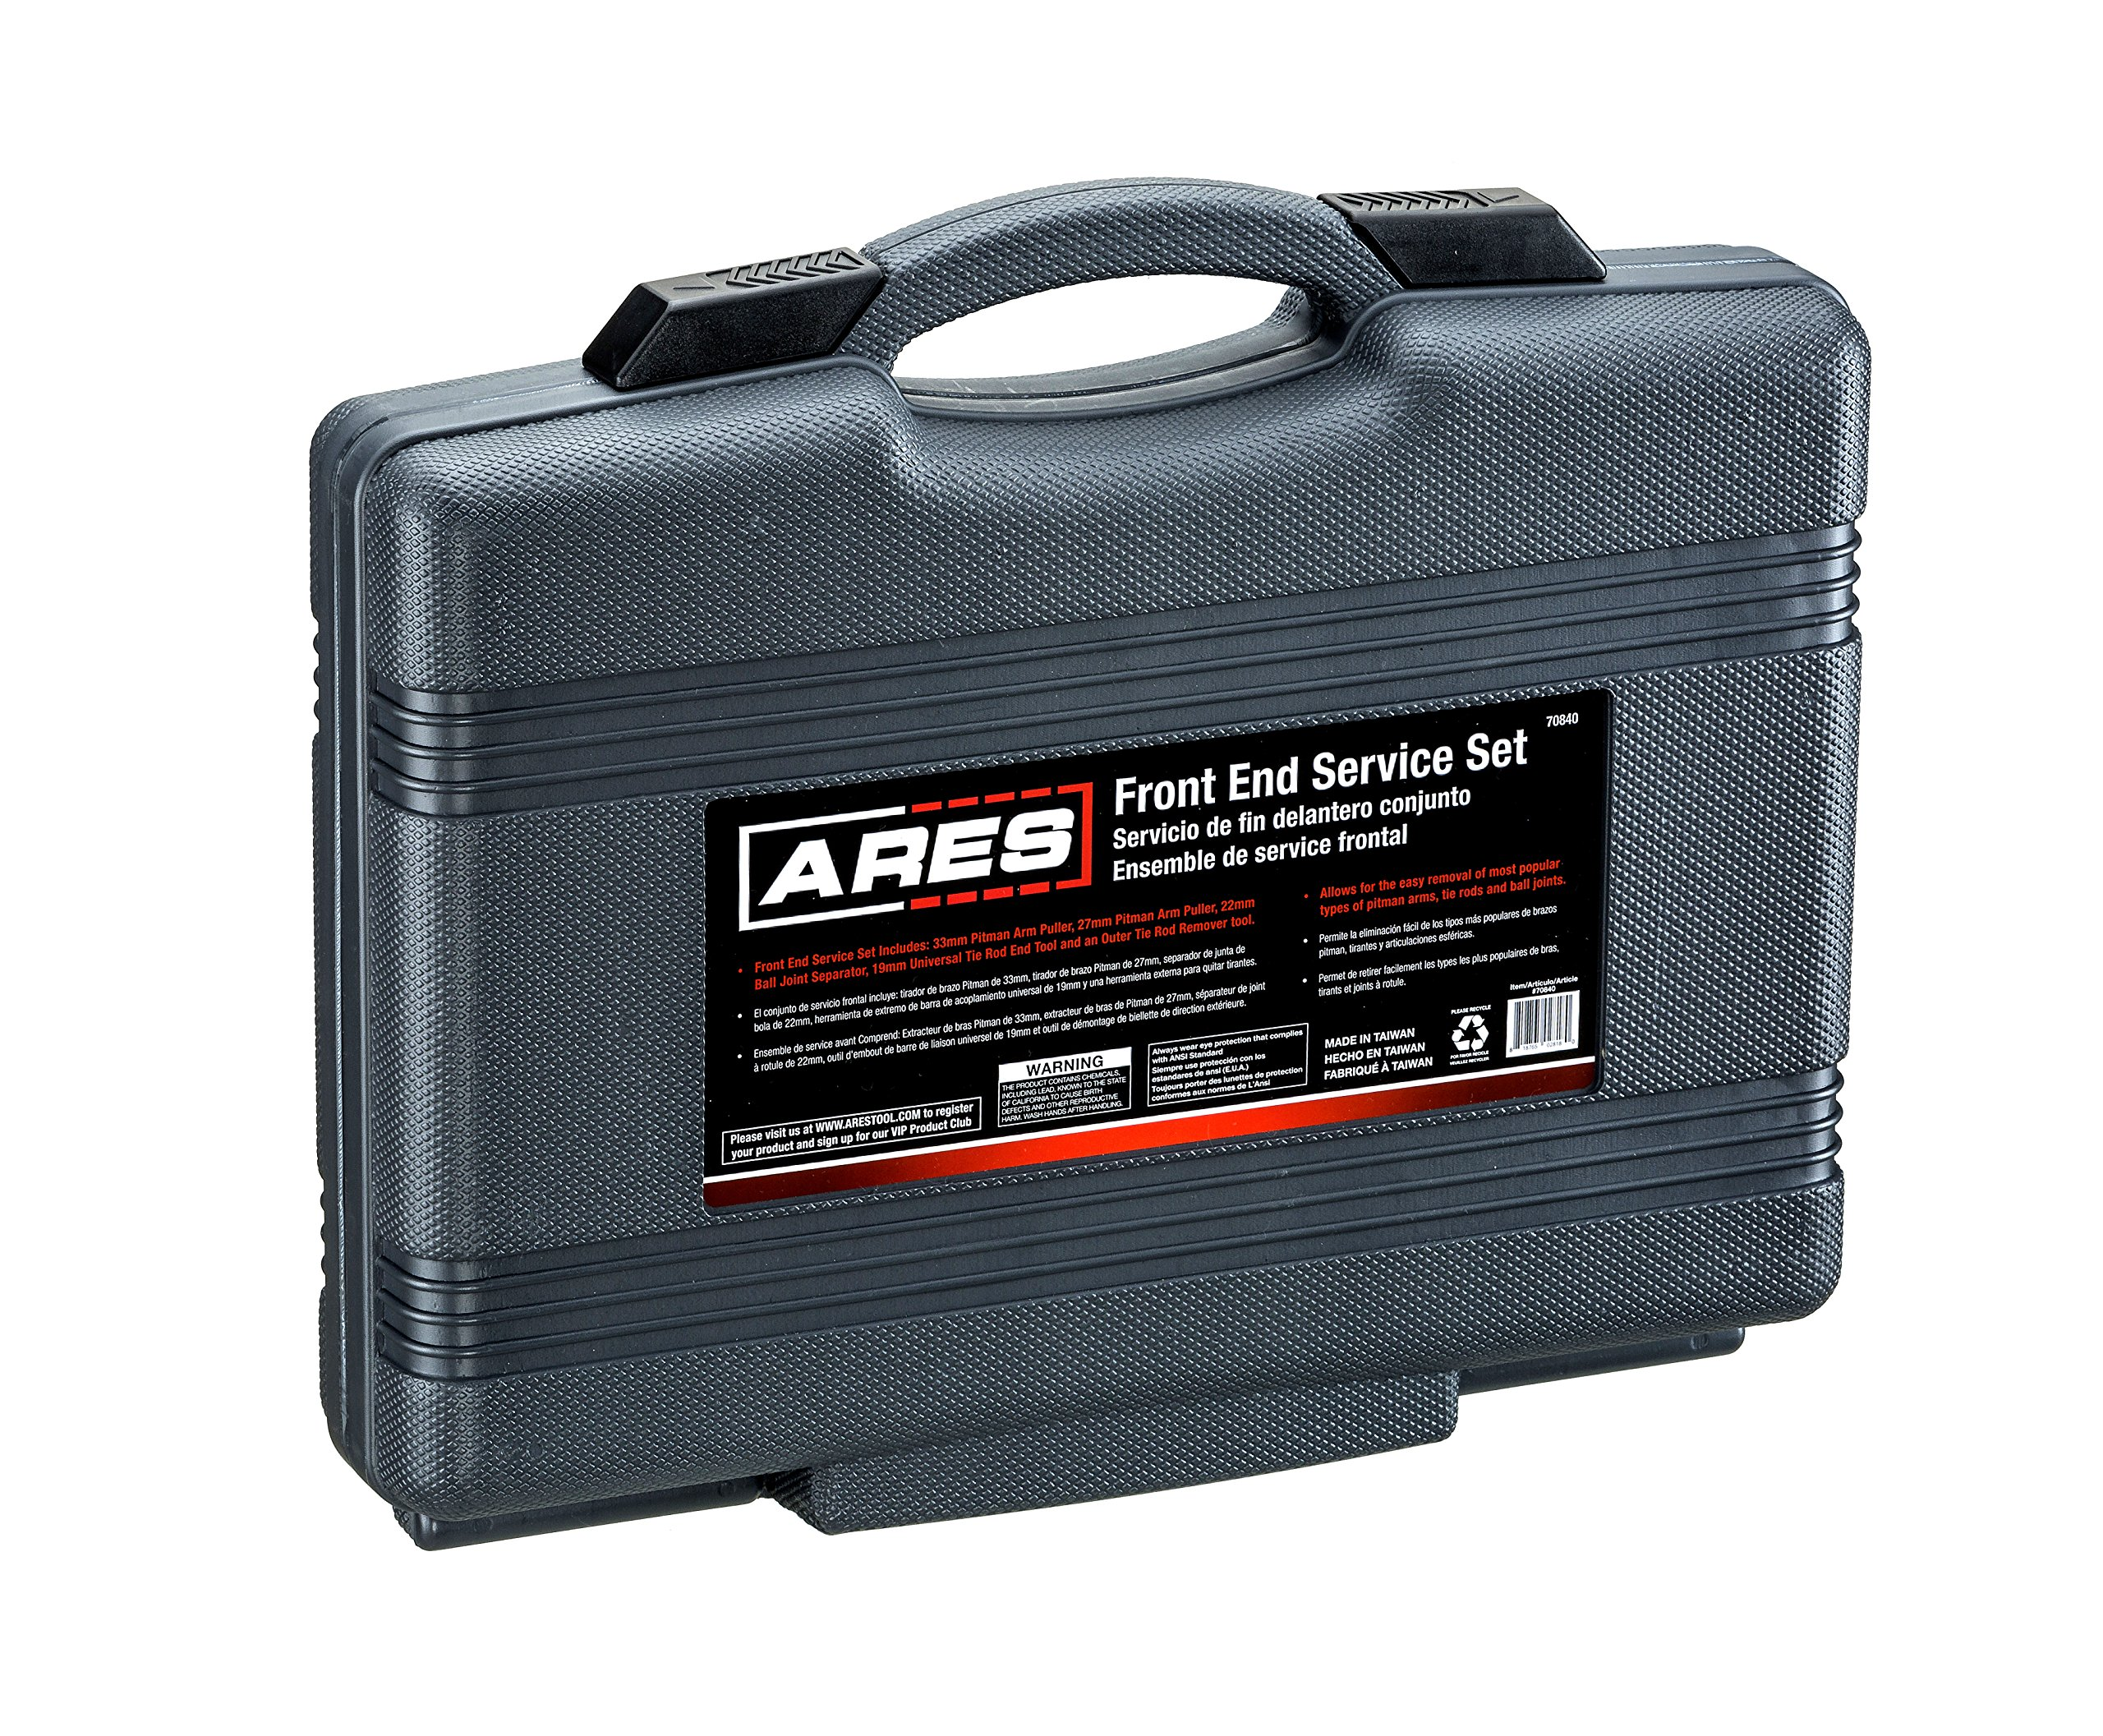 ARES 70840 | Front End Service Set | Allows for Easy Removal of Most Popular Types of Pitman Arms, Tie Rods and Ball Joints Storage Case Included by ARES (Image #6)